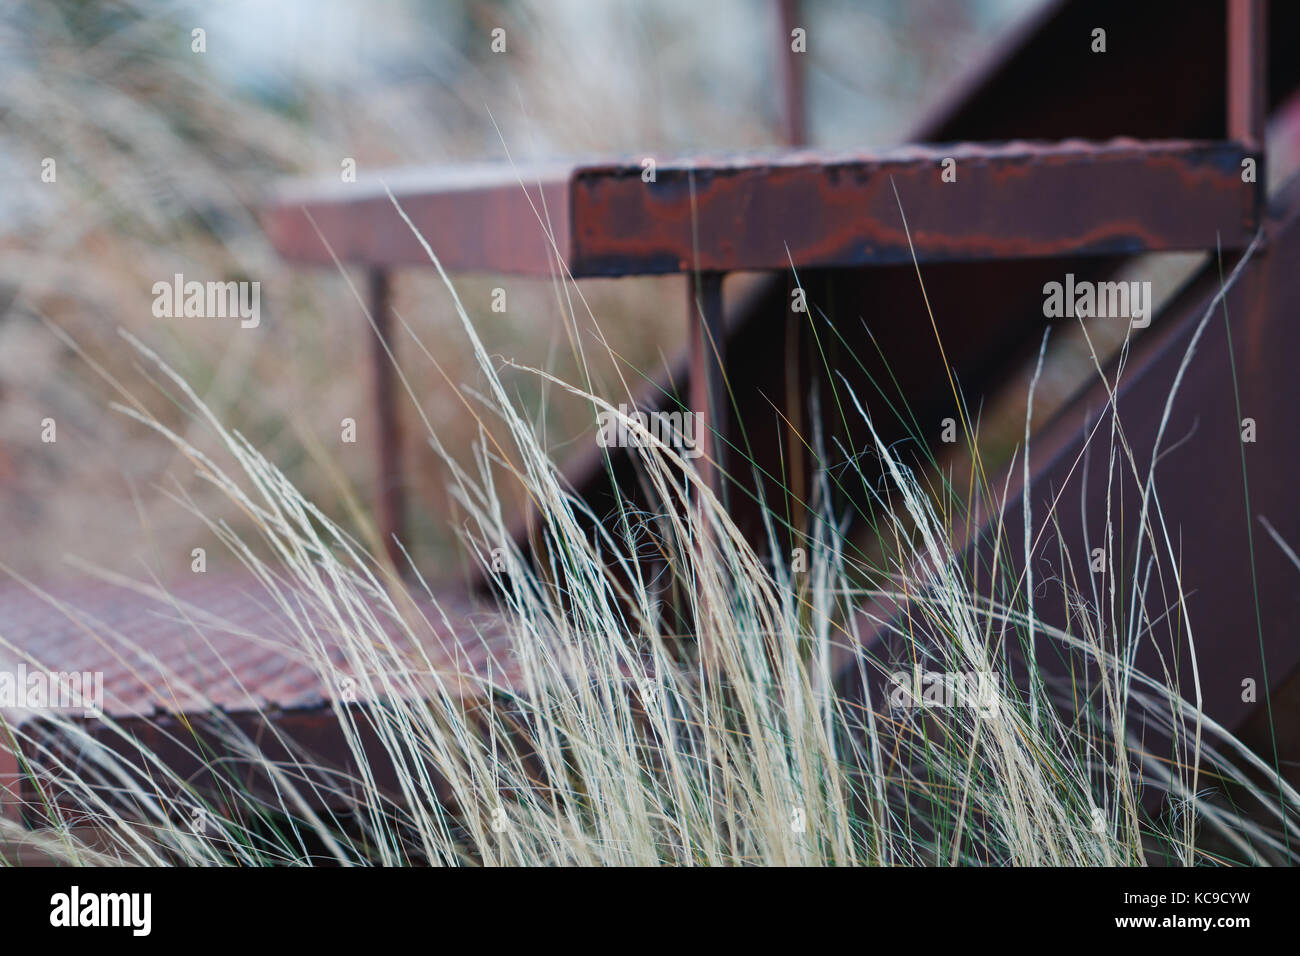 Stairs of an abandoned house, overgrown with grass. The concept of desolation and abandonment. - Stock Image